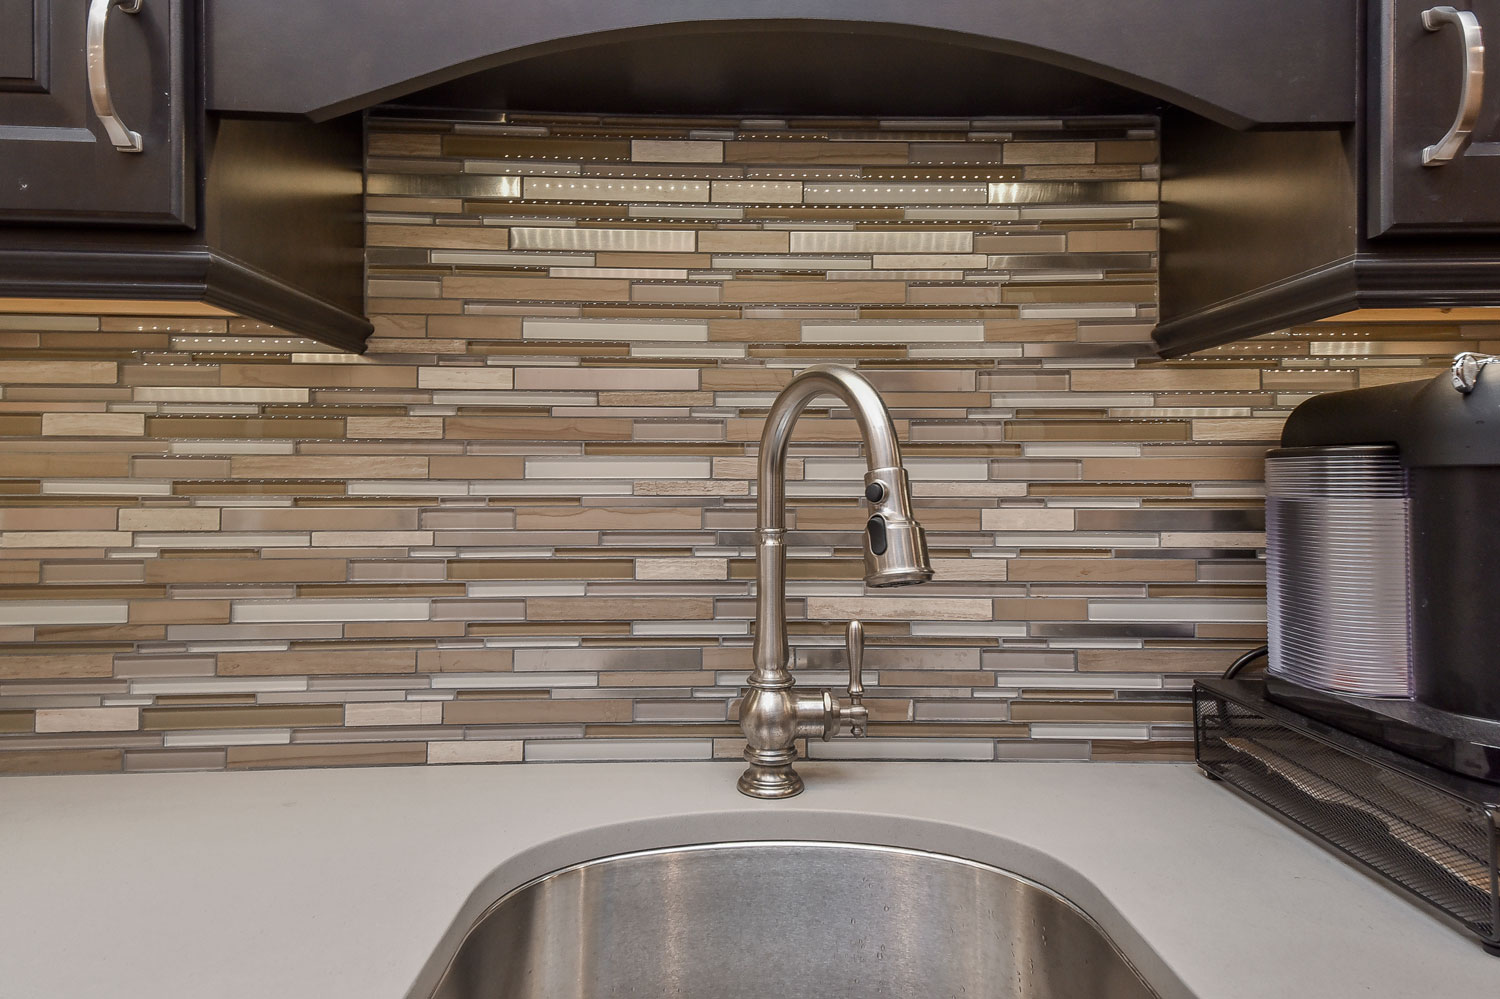 Downers Grove Basement Remodel with Sauna, Steam Shower, Office - Sebring Design Build